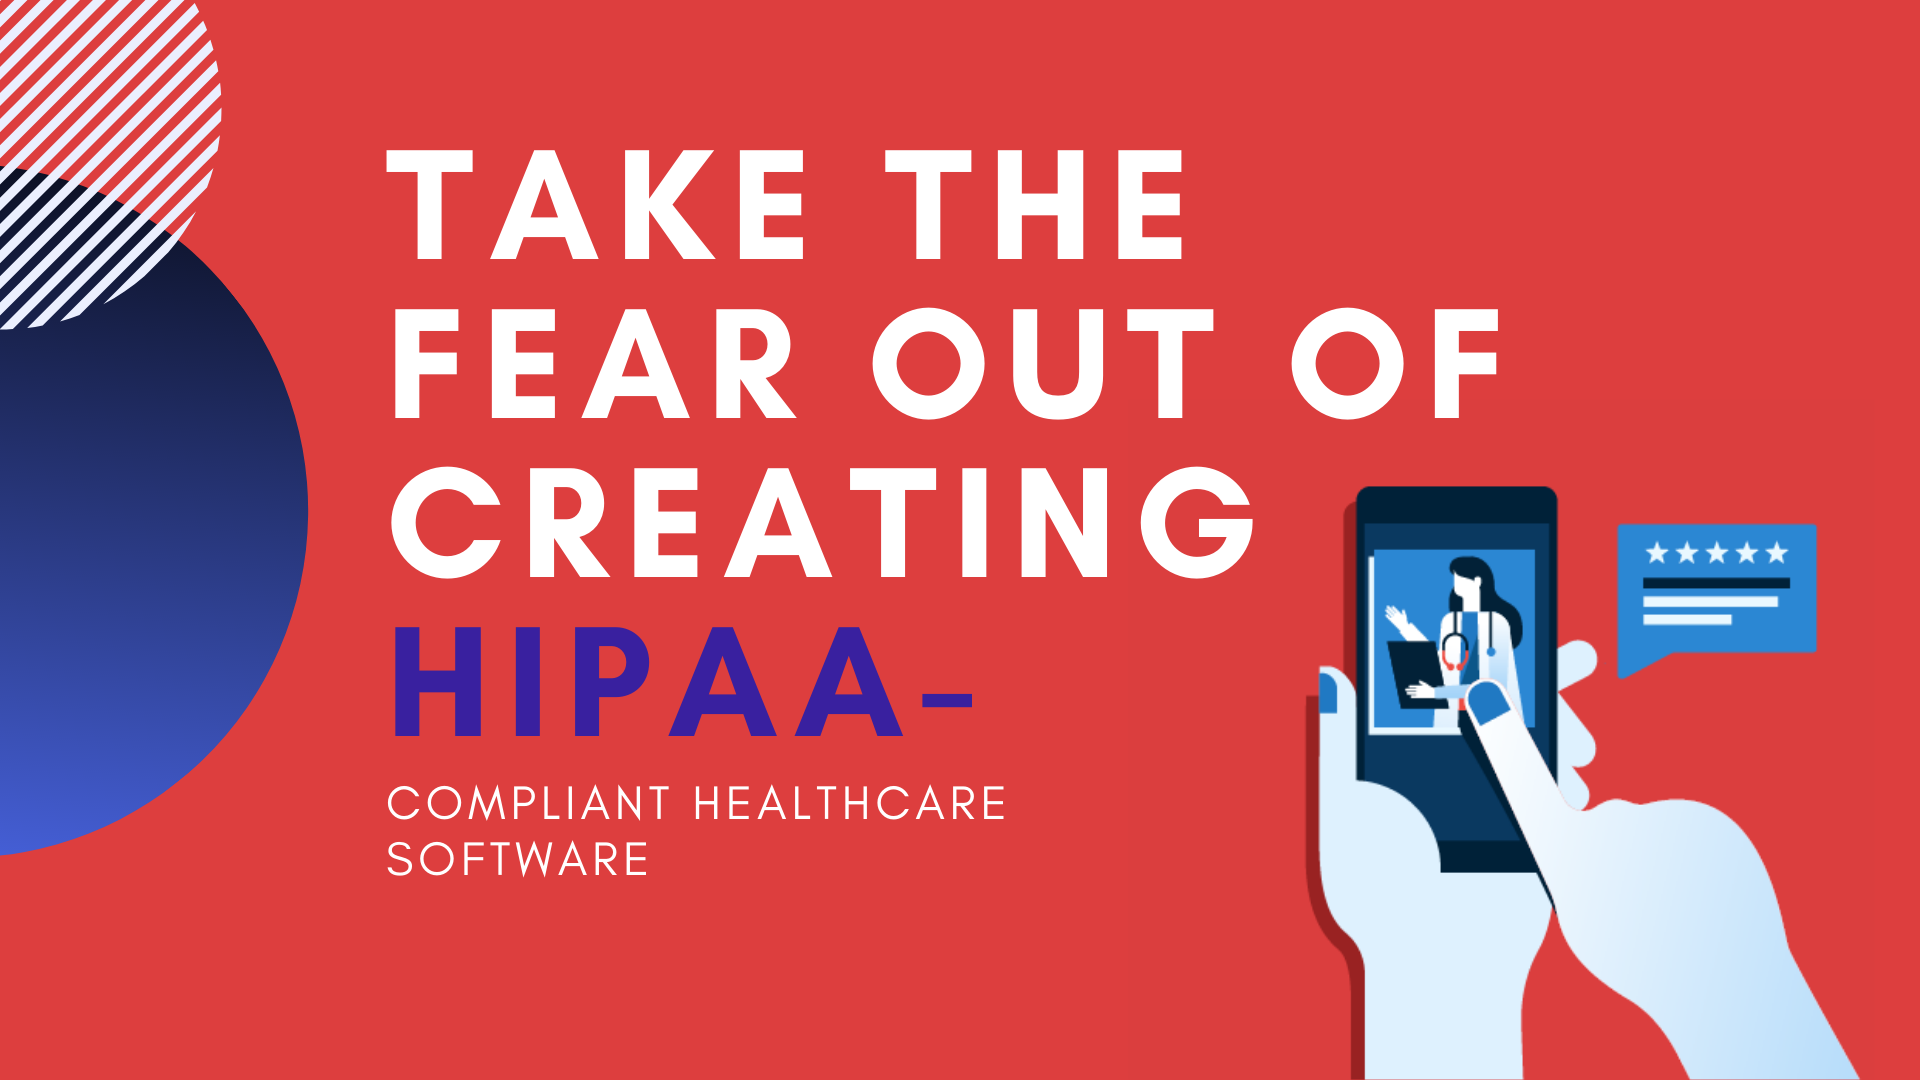 Take the fear out of creating HIPAA-compliant healthcare software